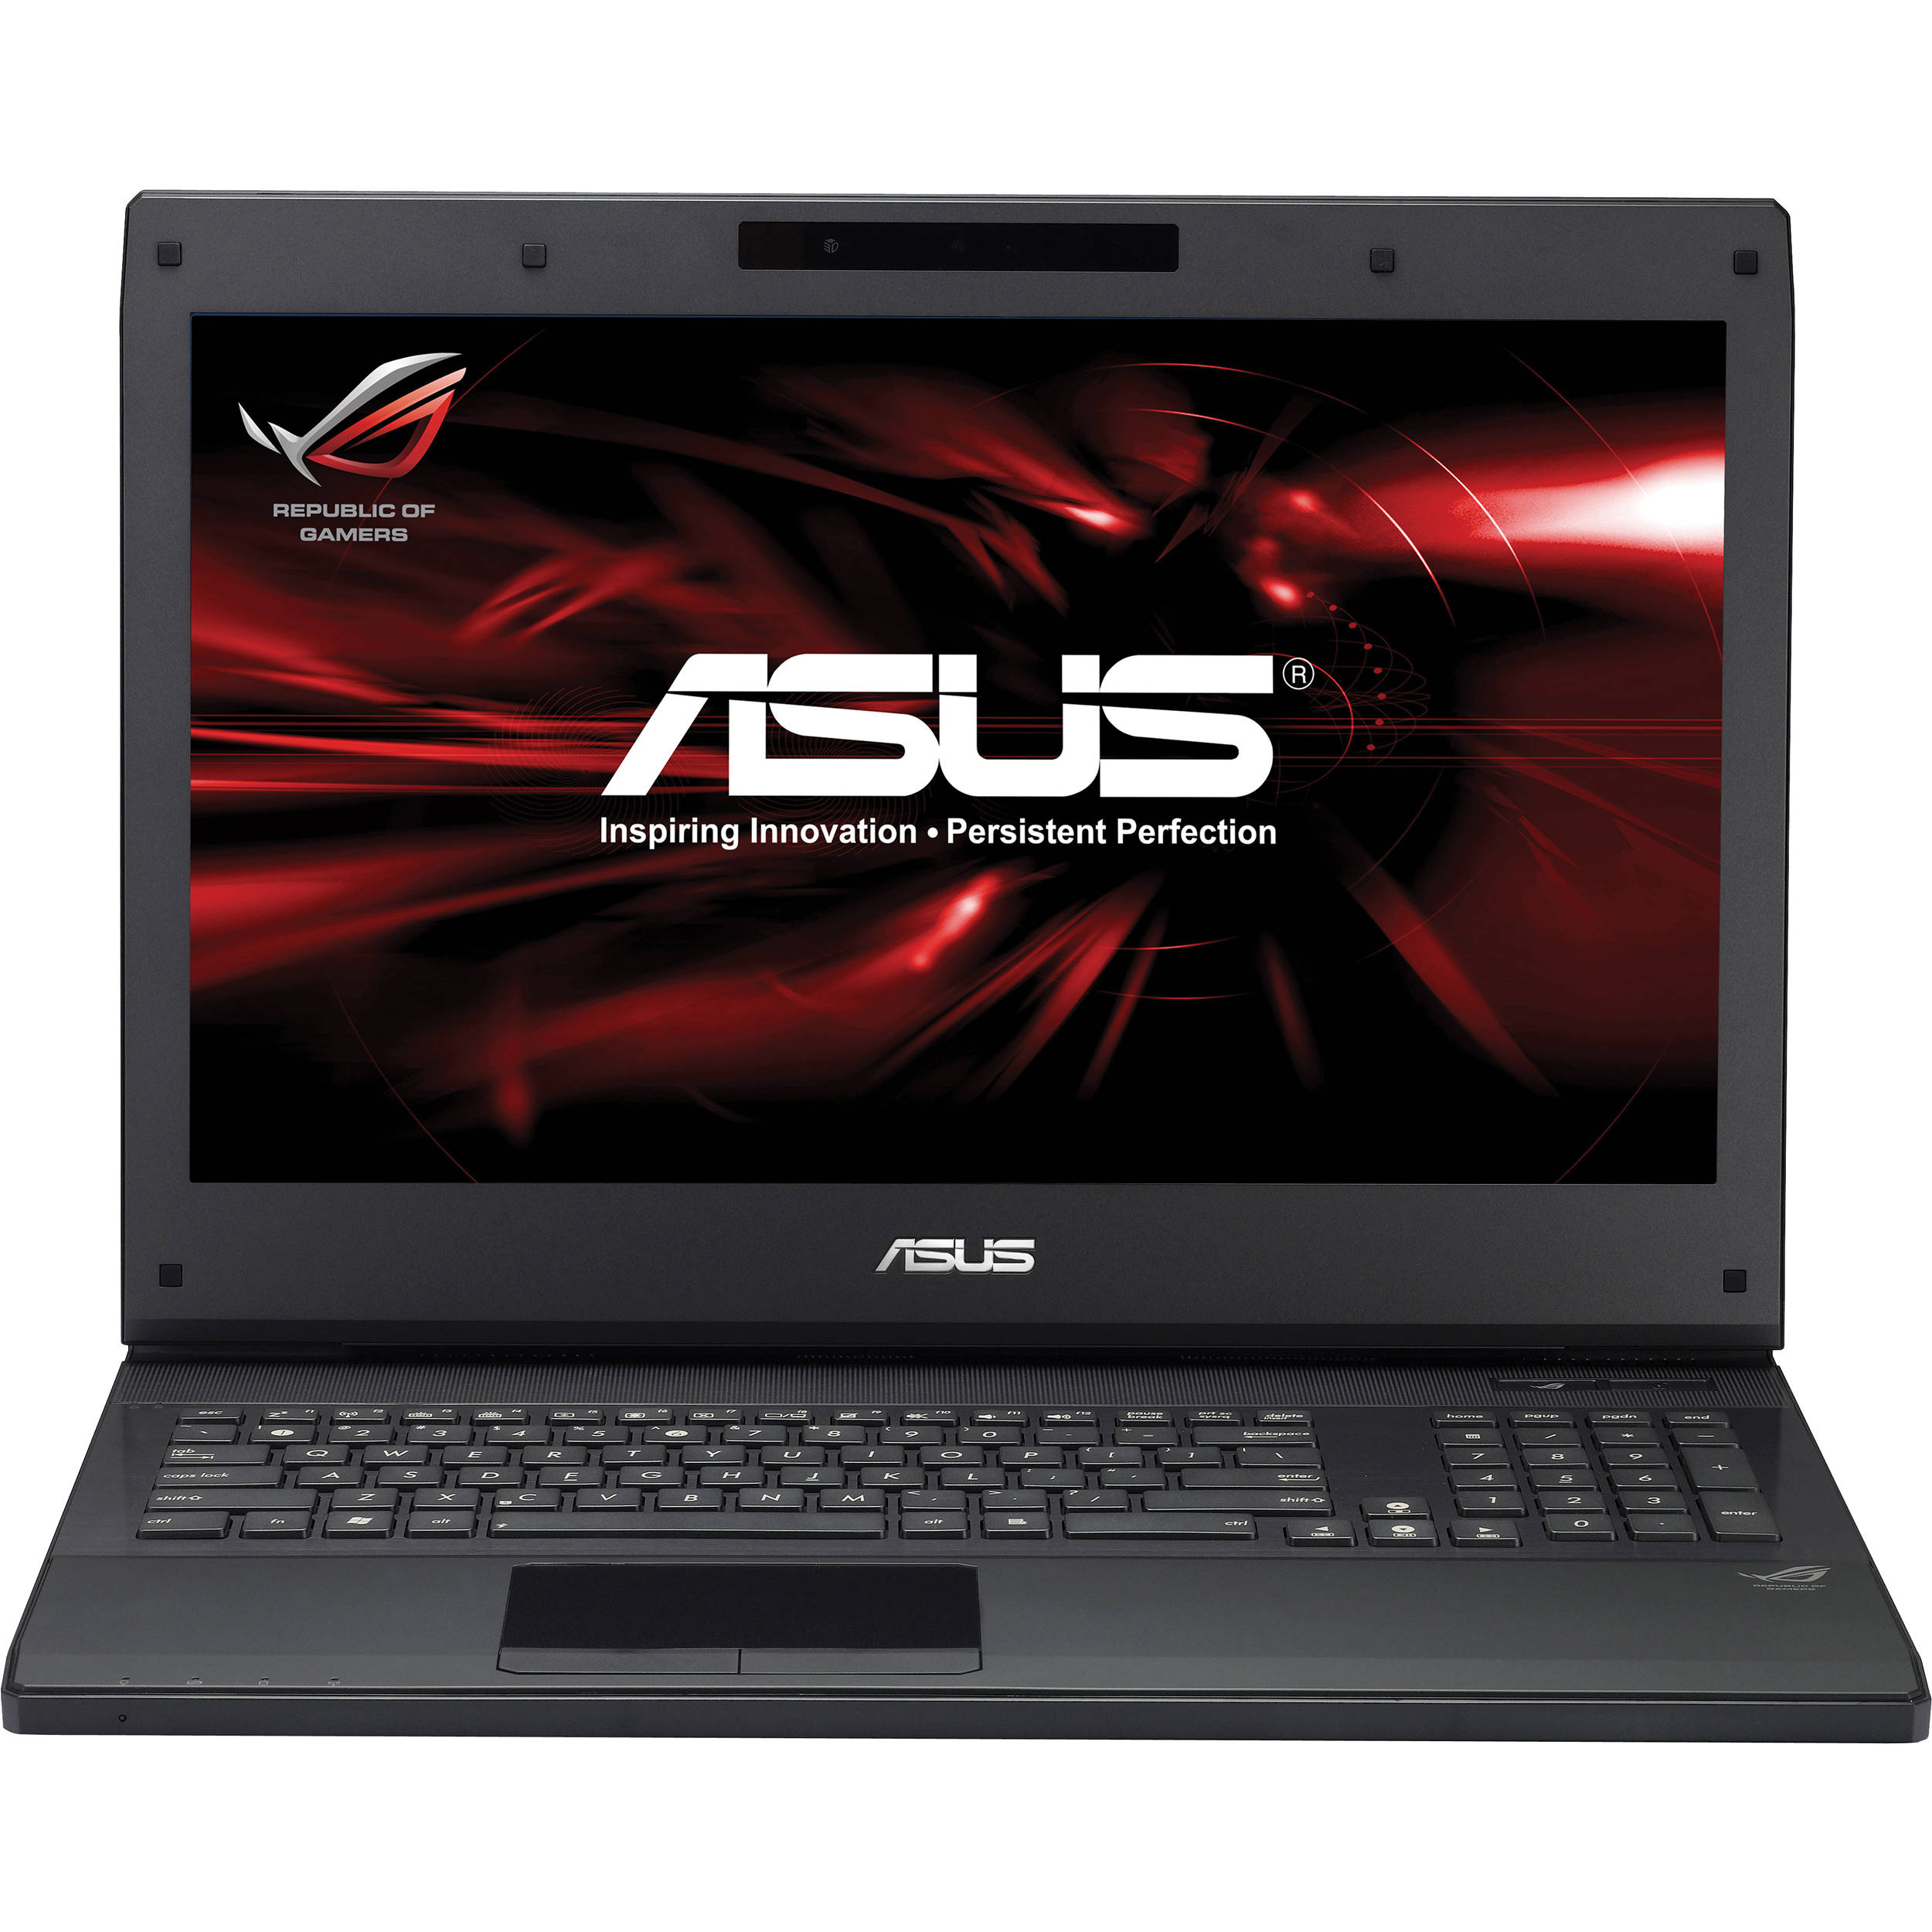 ASUS G74SX-DH71 DRIVERS FOR WINDOWS XP